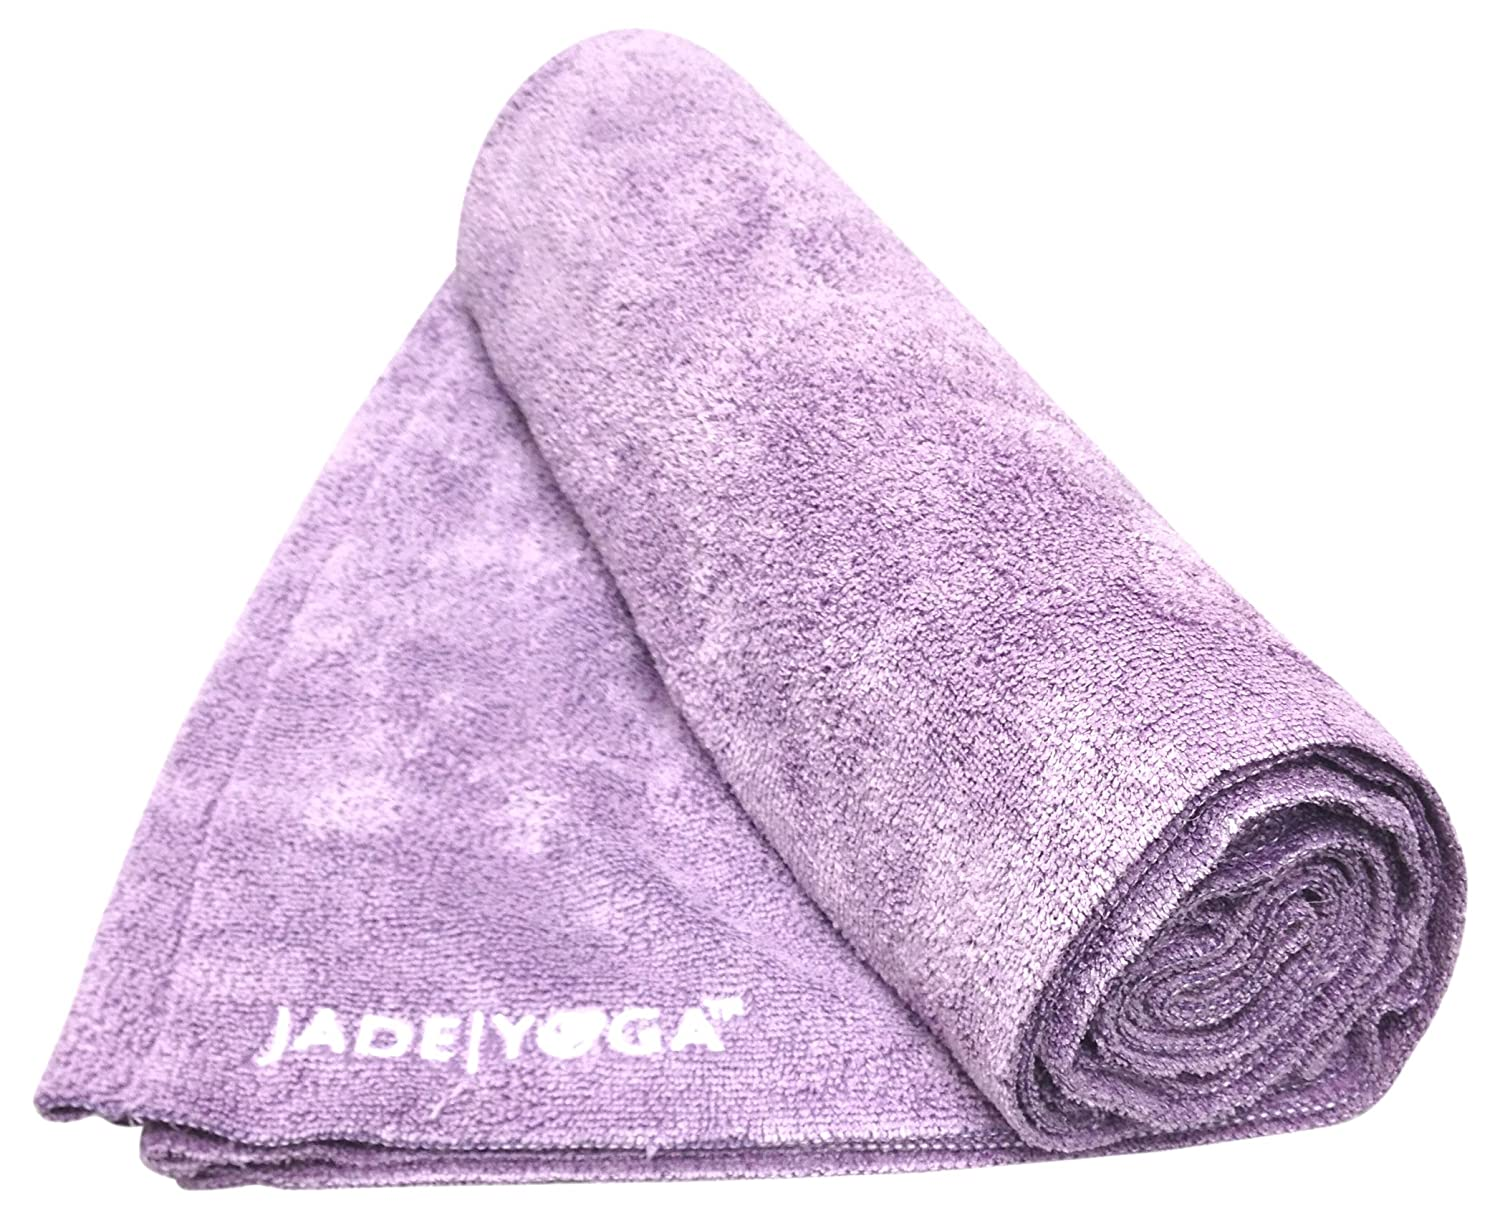 Jade Yoga Hand Towel Yoga